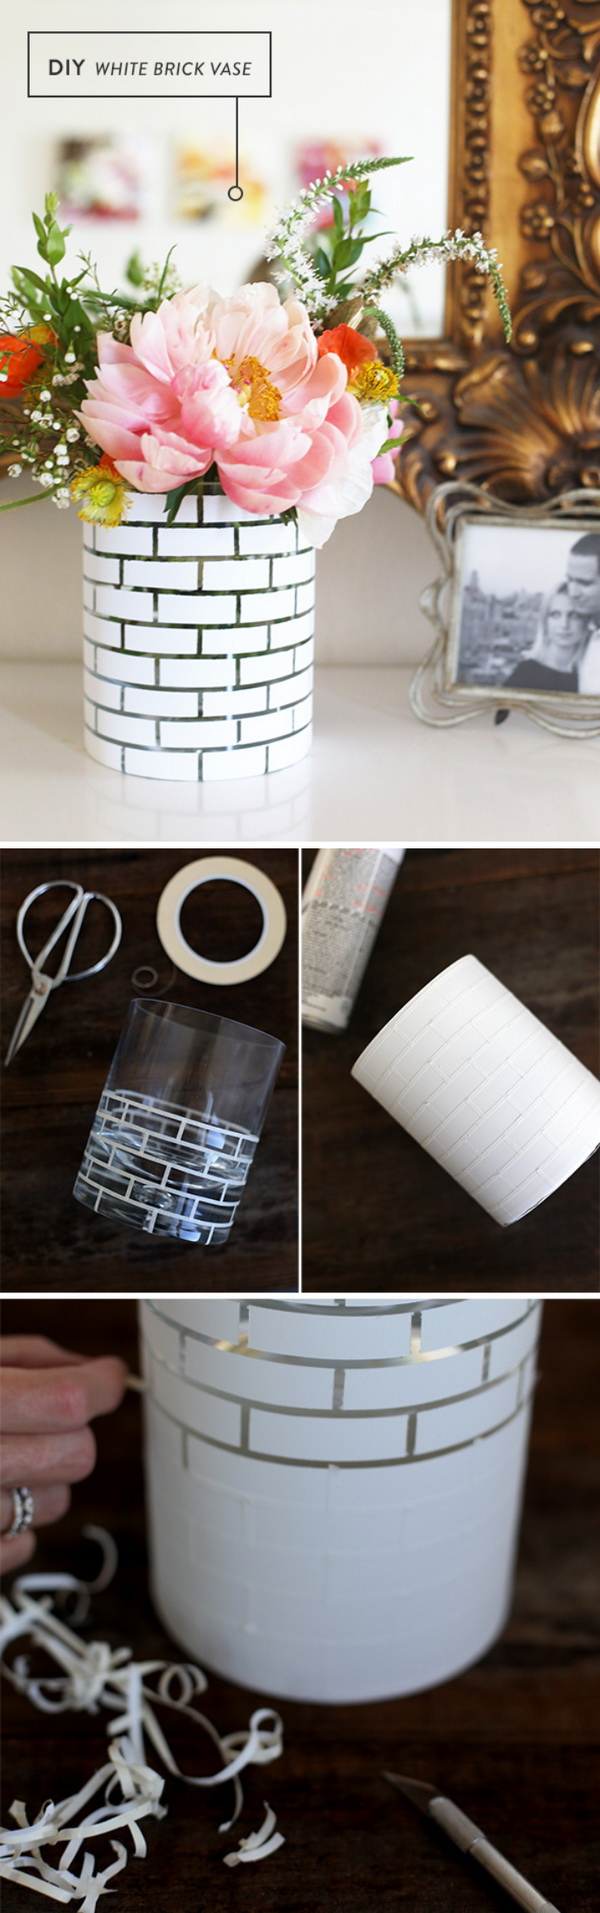 DIY White Brick Vase A Creative And Easy Way To Add Some New Life Into